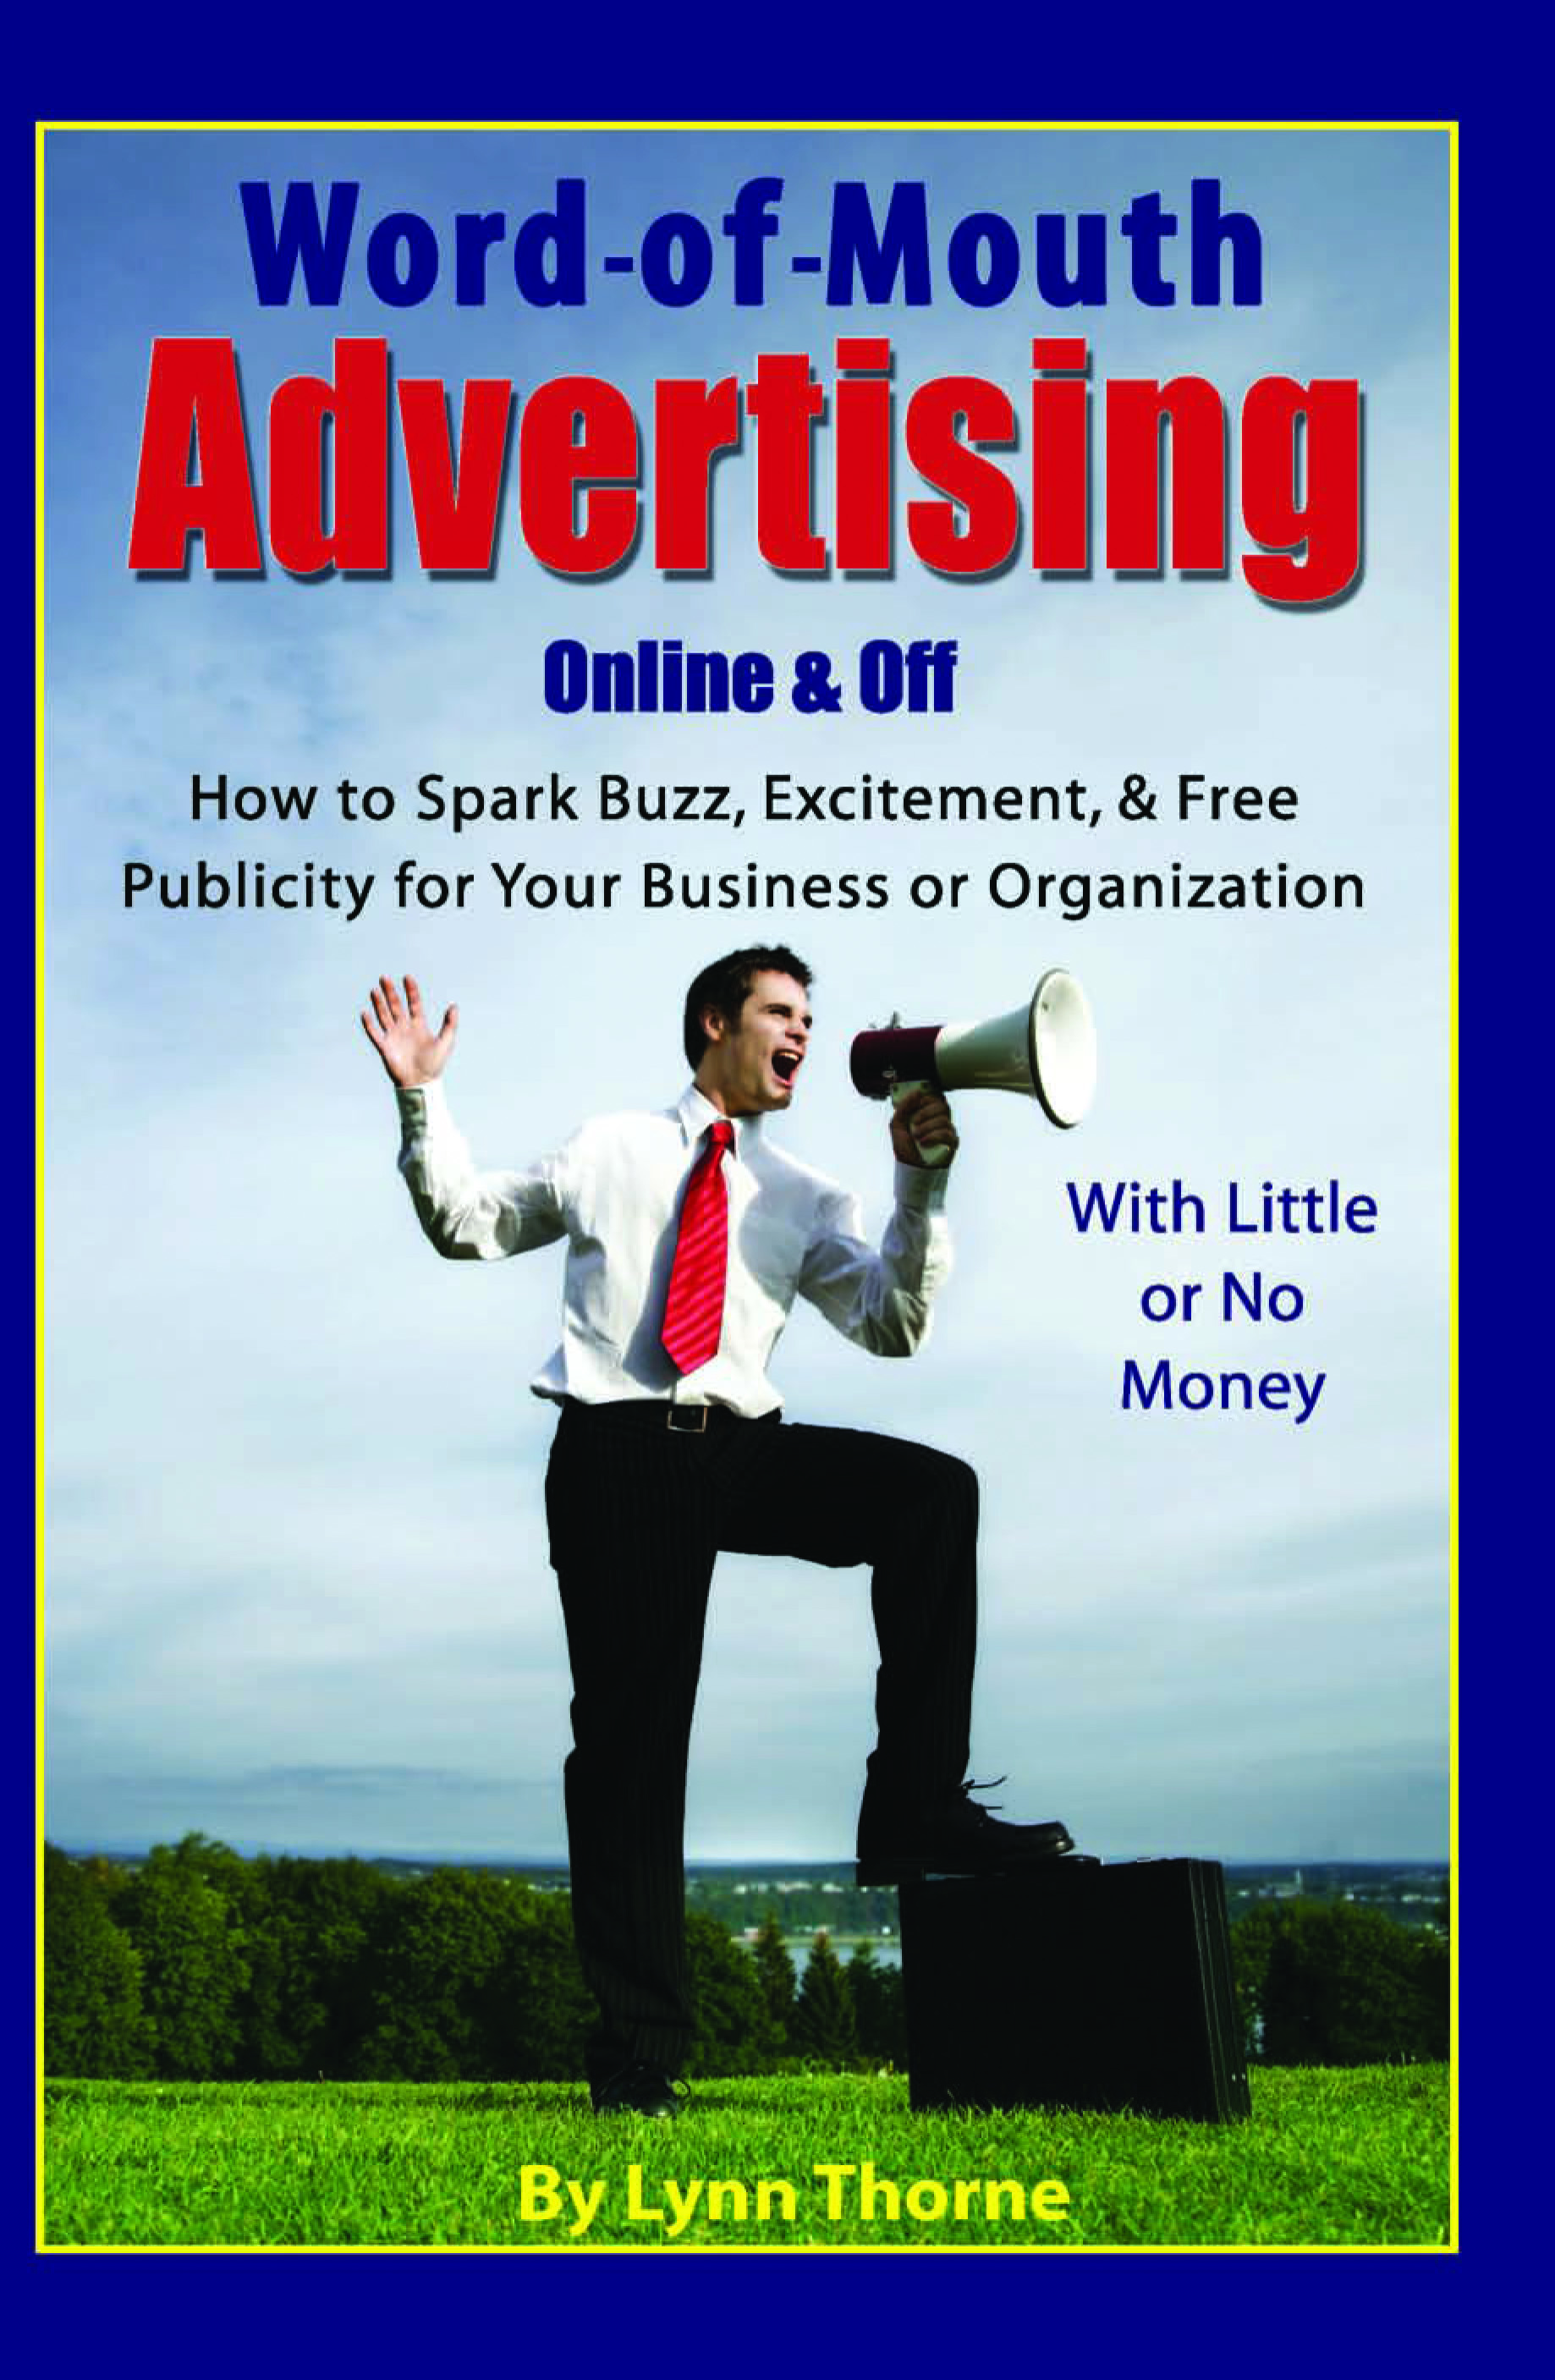 Word of Mouth Advertising Online & Off How to Spark Buzz, Excitement, and Free Publicity for Your Business or Organization